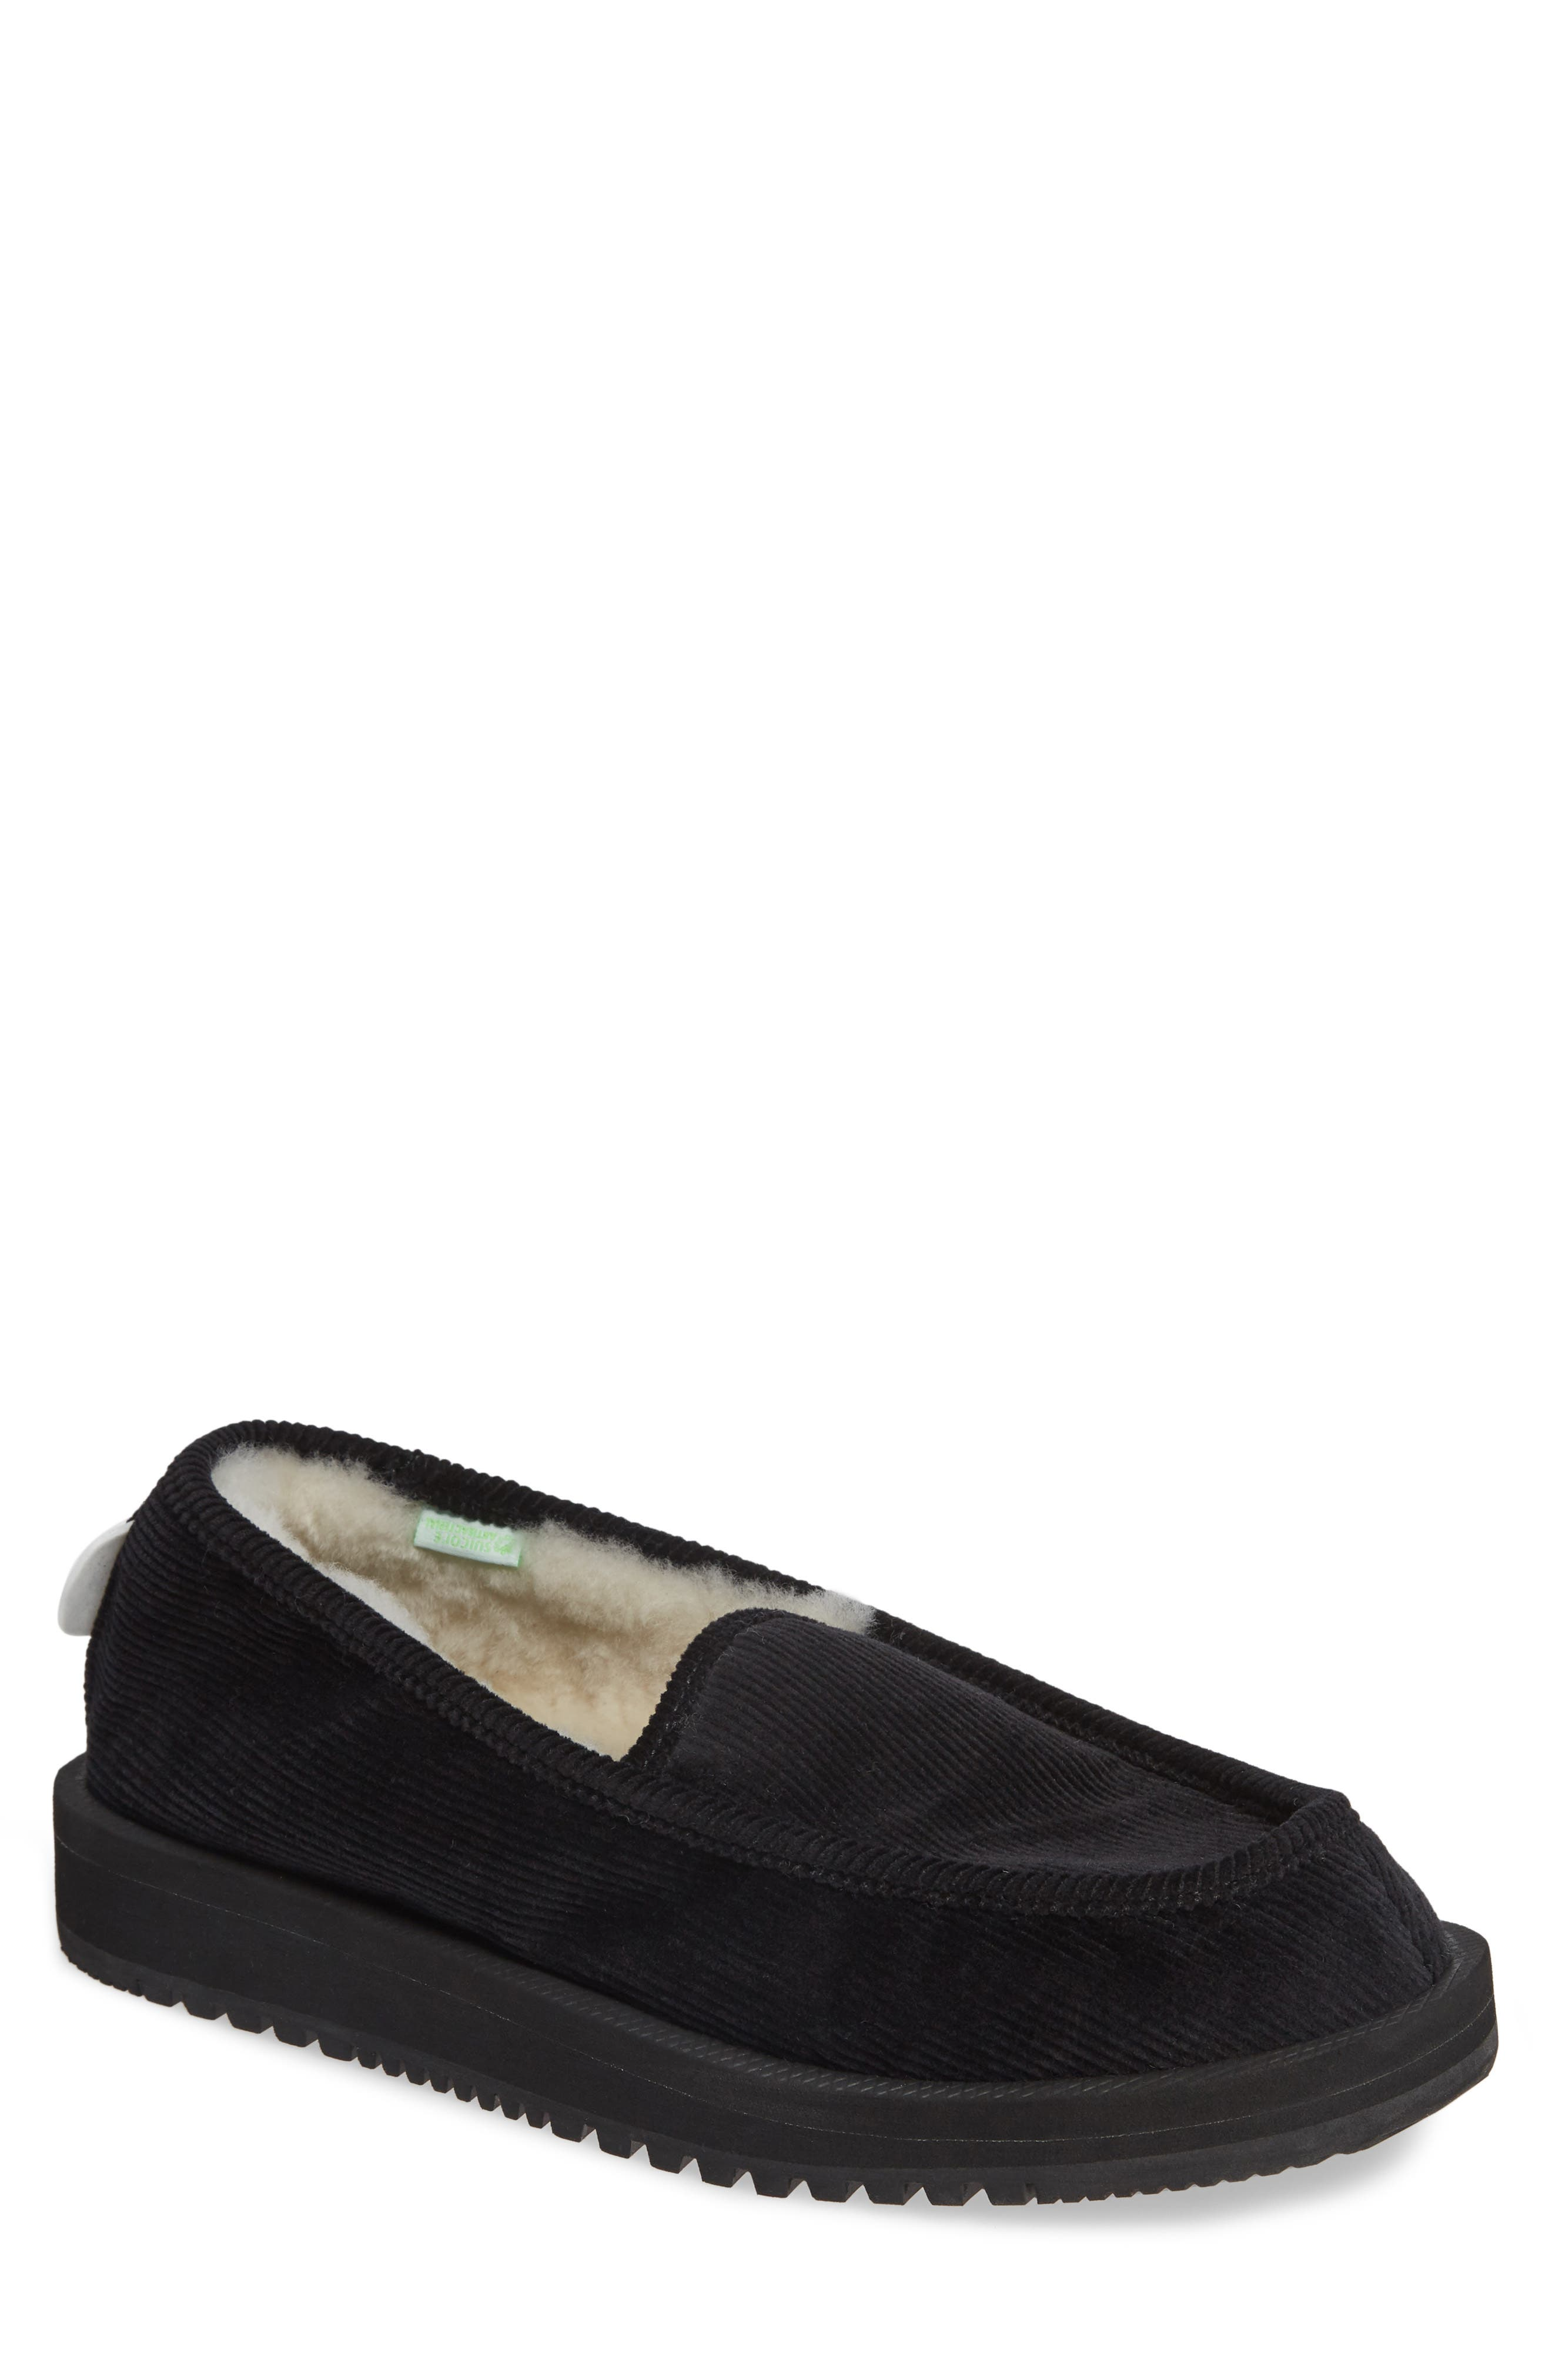 Genuine Shearling Slipper,                         Main,                         color, 001